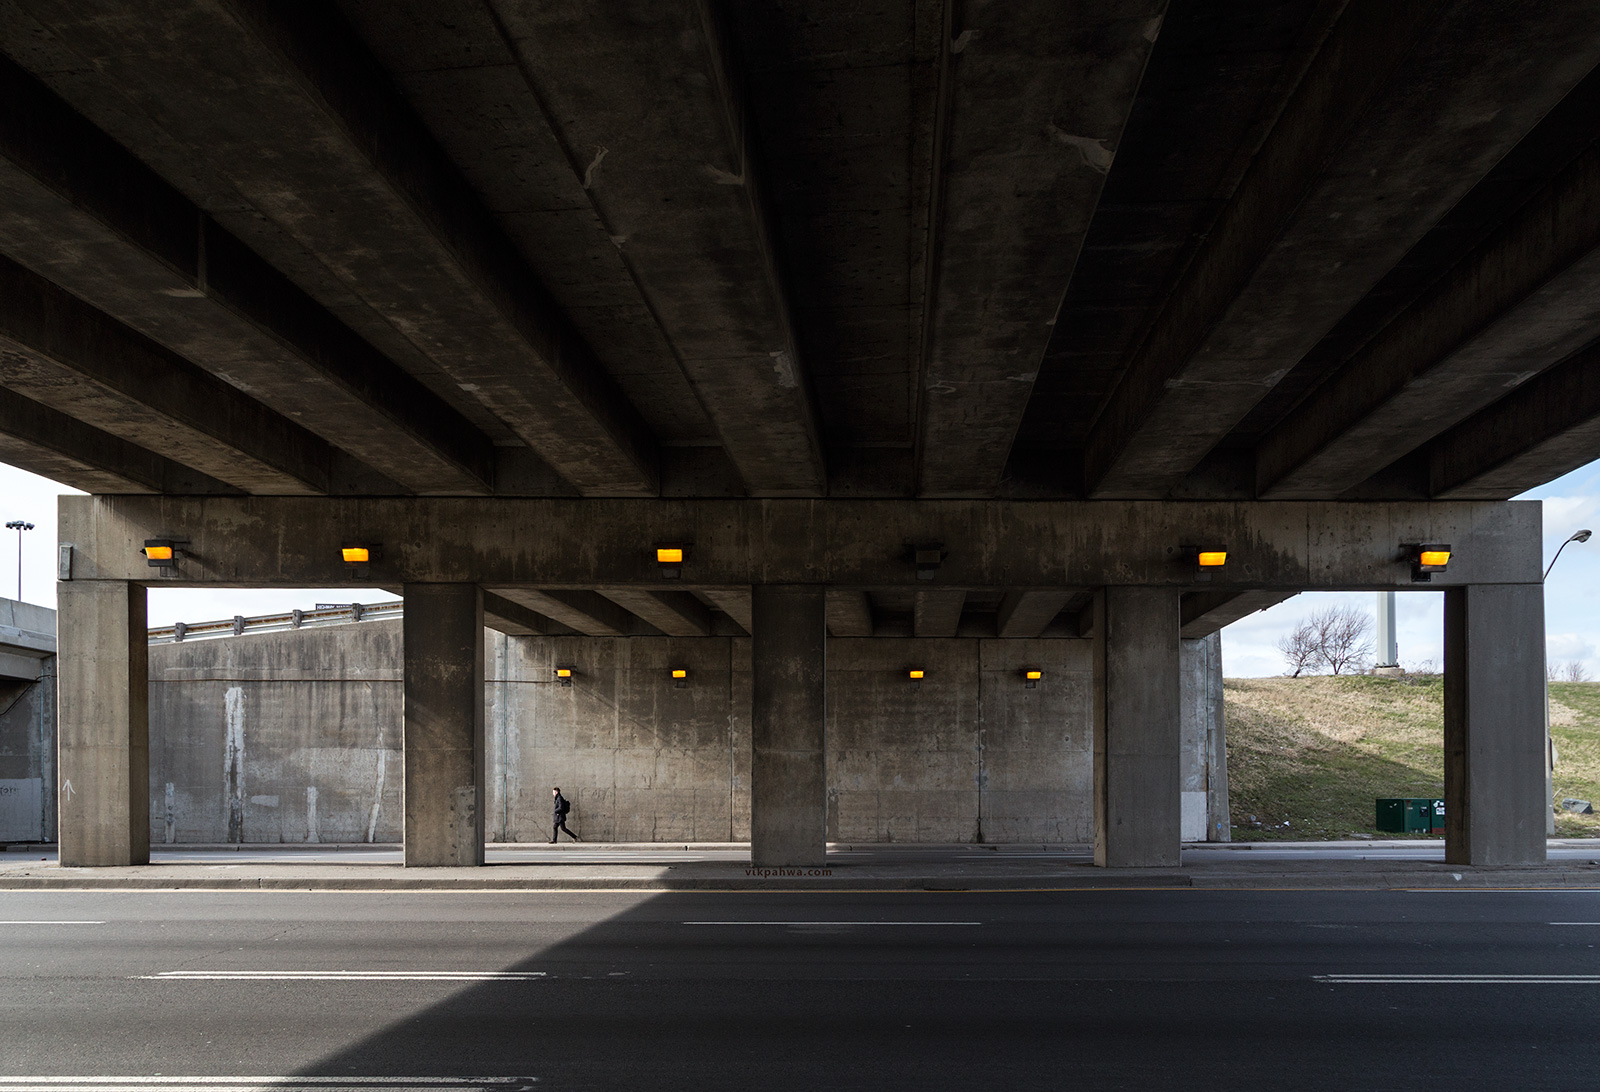 20160411. A man puts a highway overpass into scale (showing just